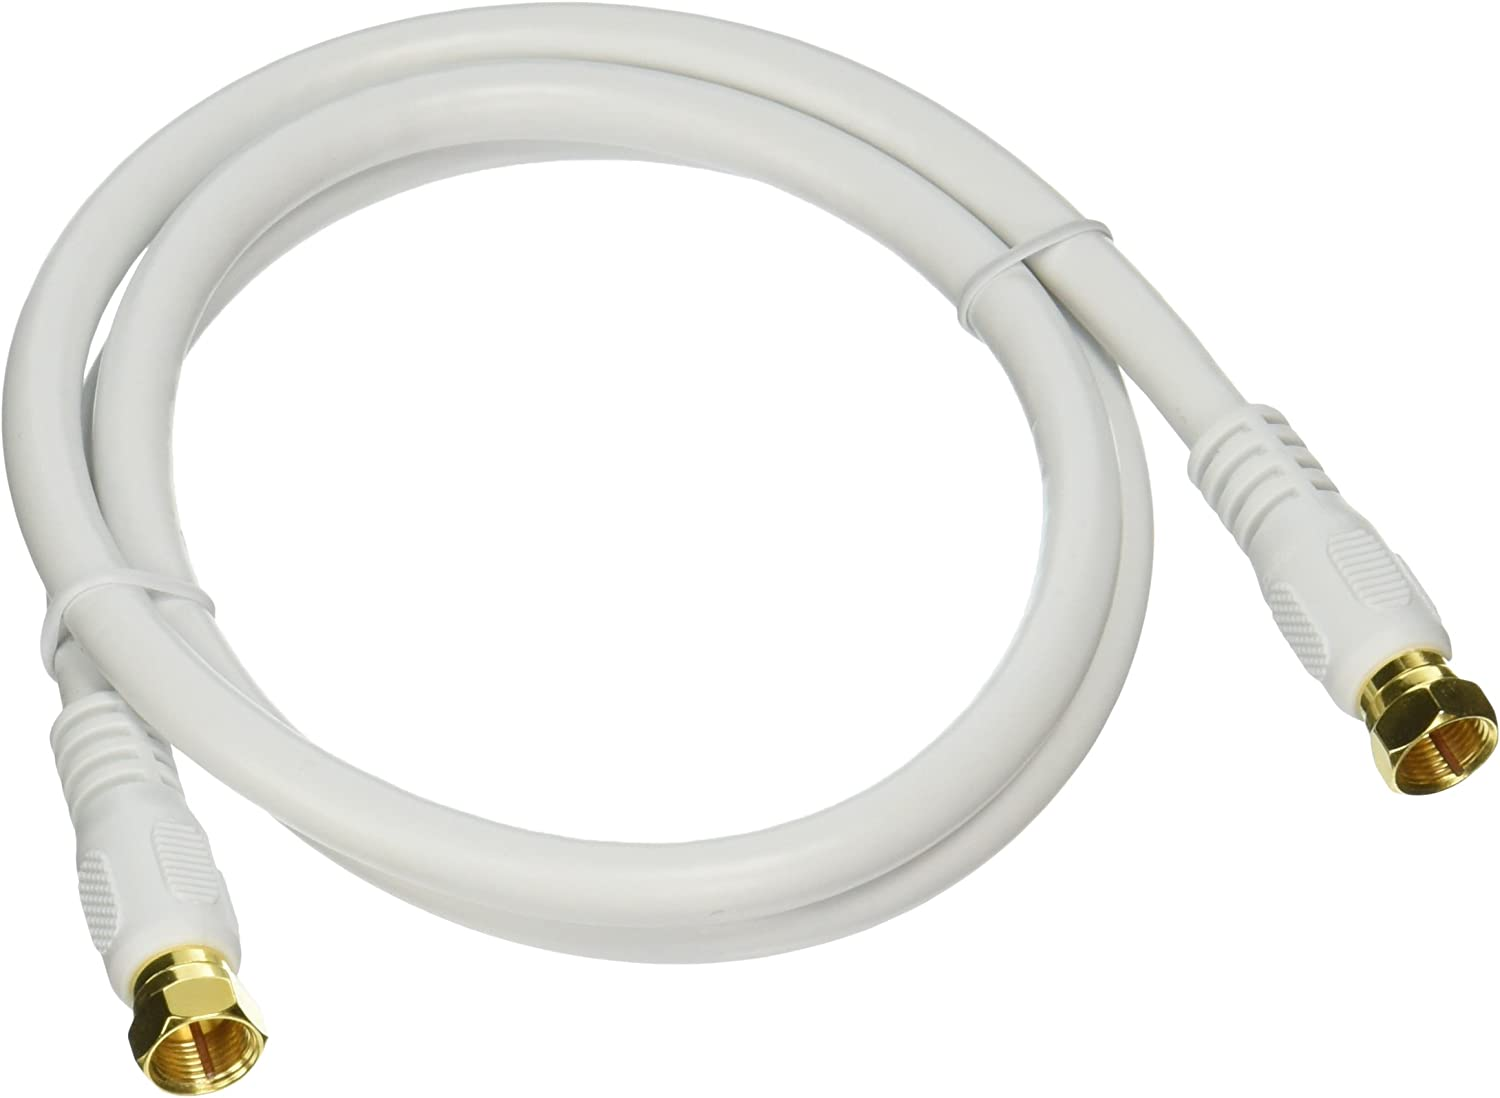 Monoprice 104057 Rg6 Quad Shield Cl2 Coaxial Cable With F Type Connector